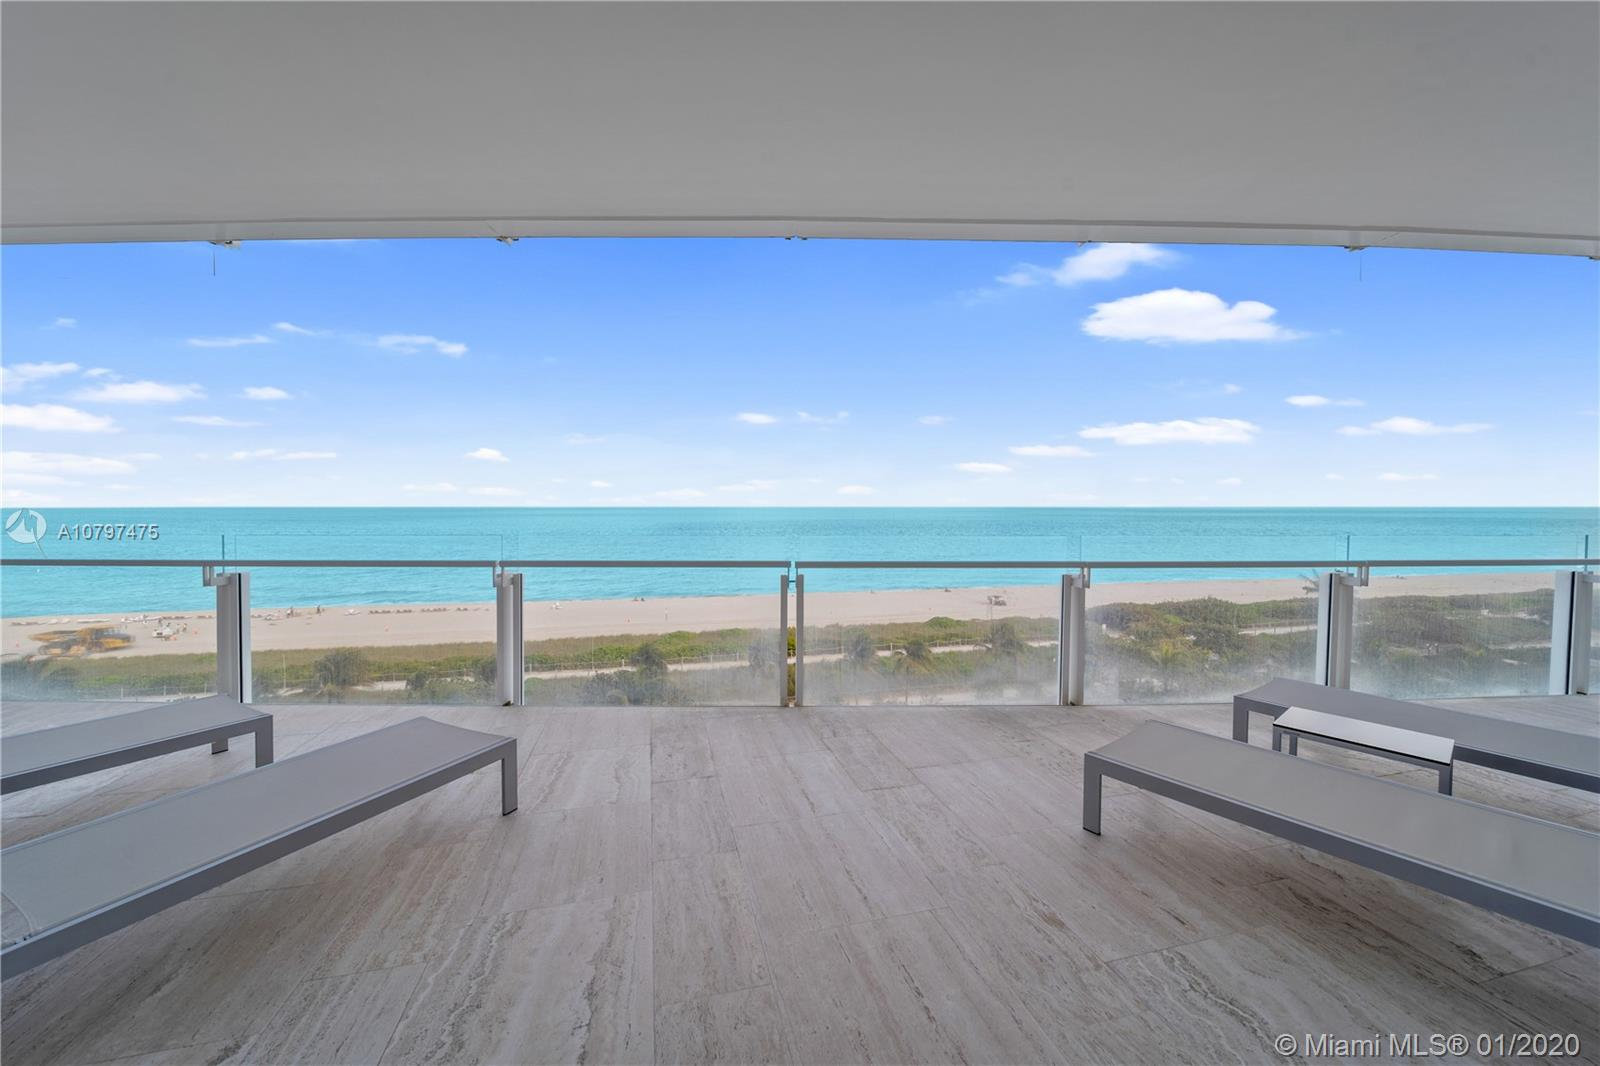 9001 Collins Ave, Unit #S-605 Luxury Real Estate